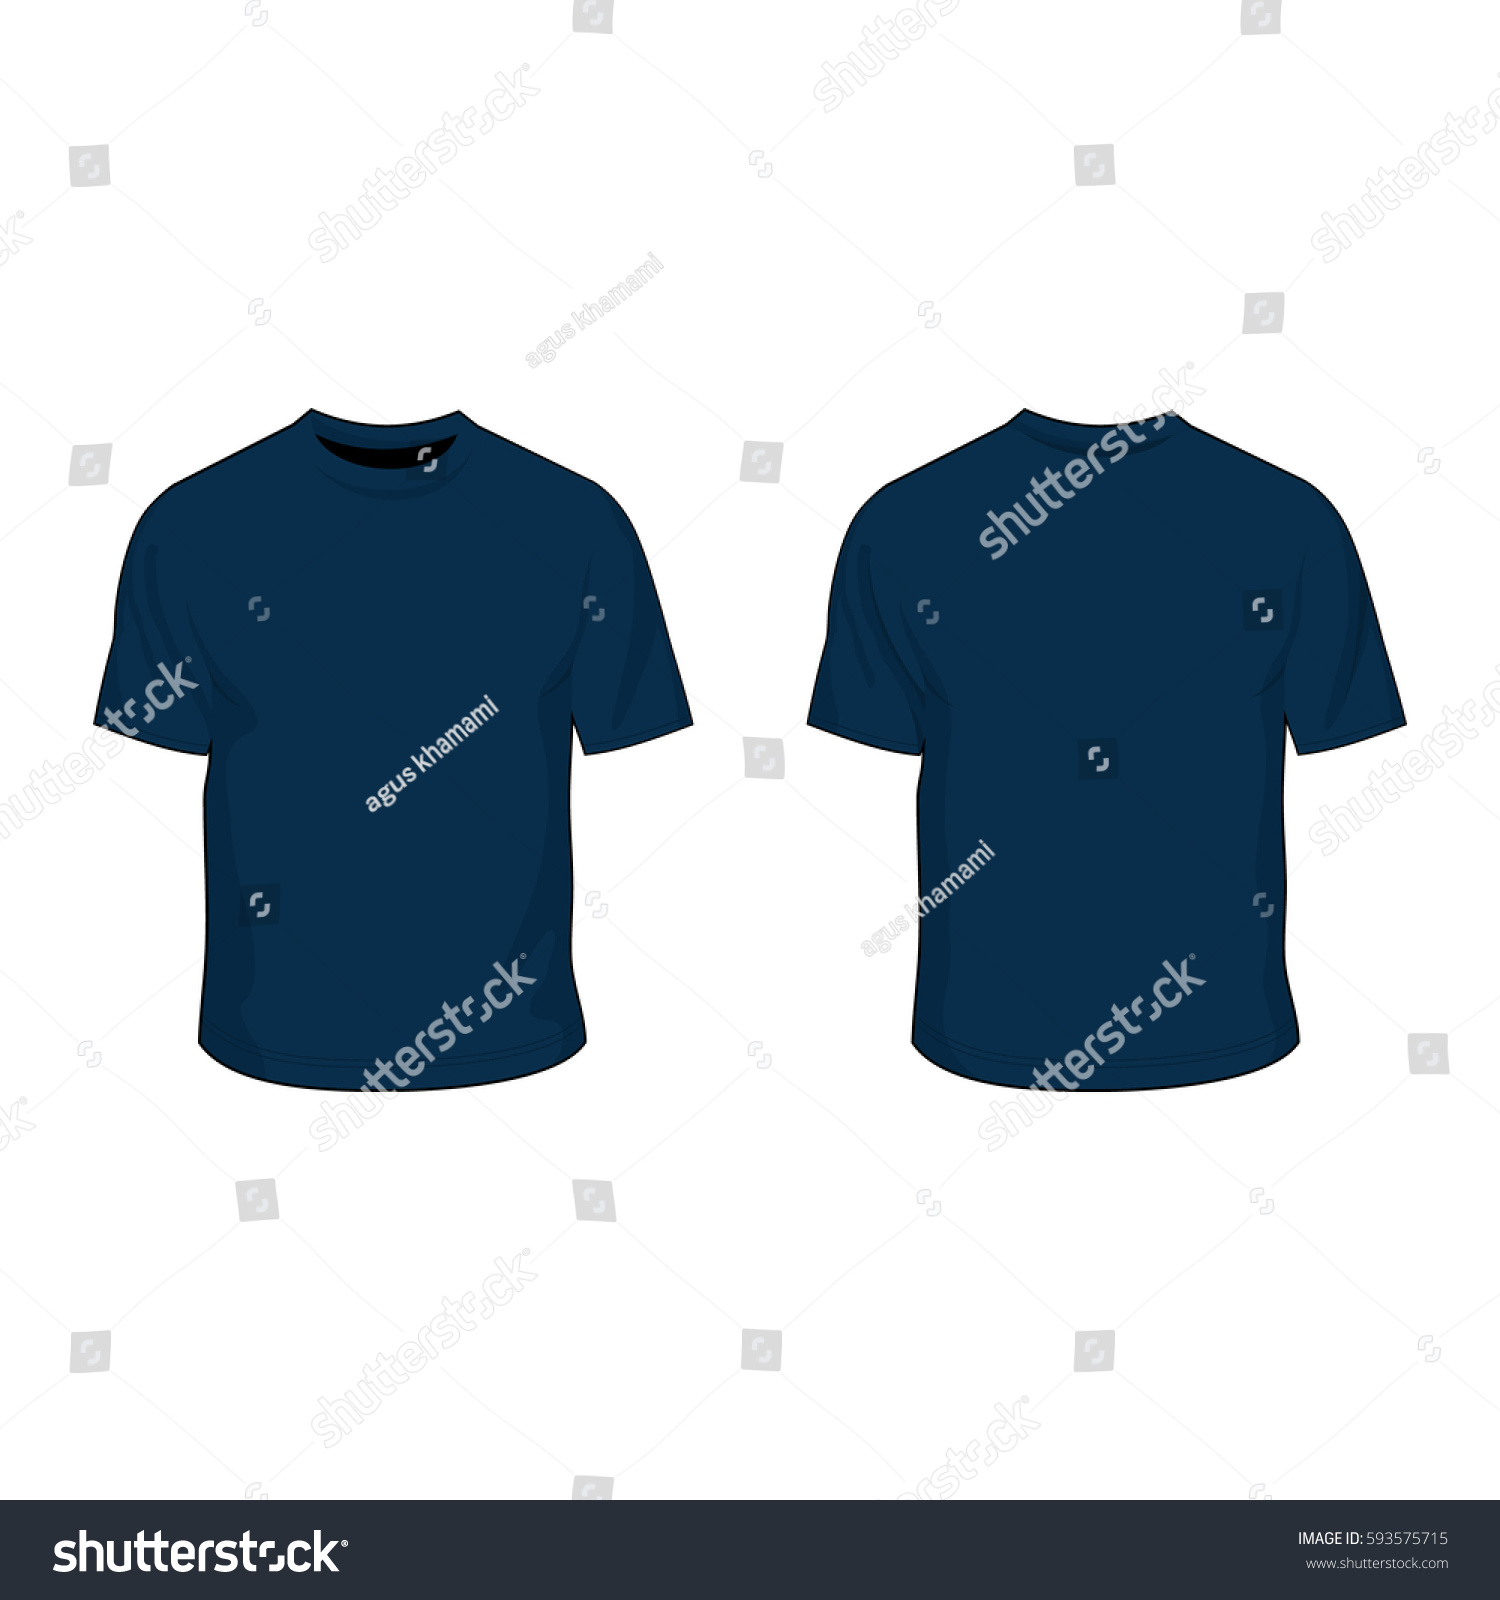 Comfortable navy t shirt template images example resume for Navy blue t shirt template